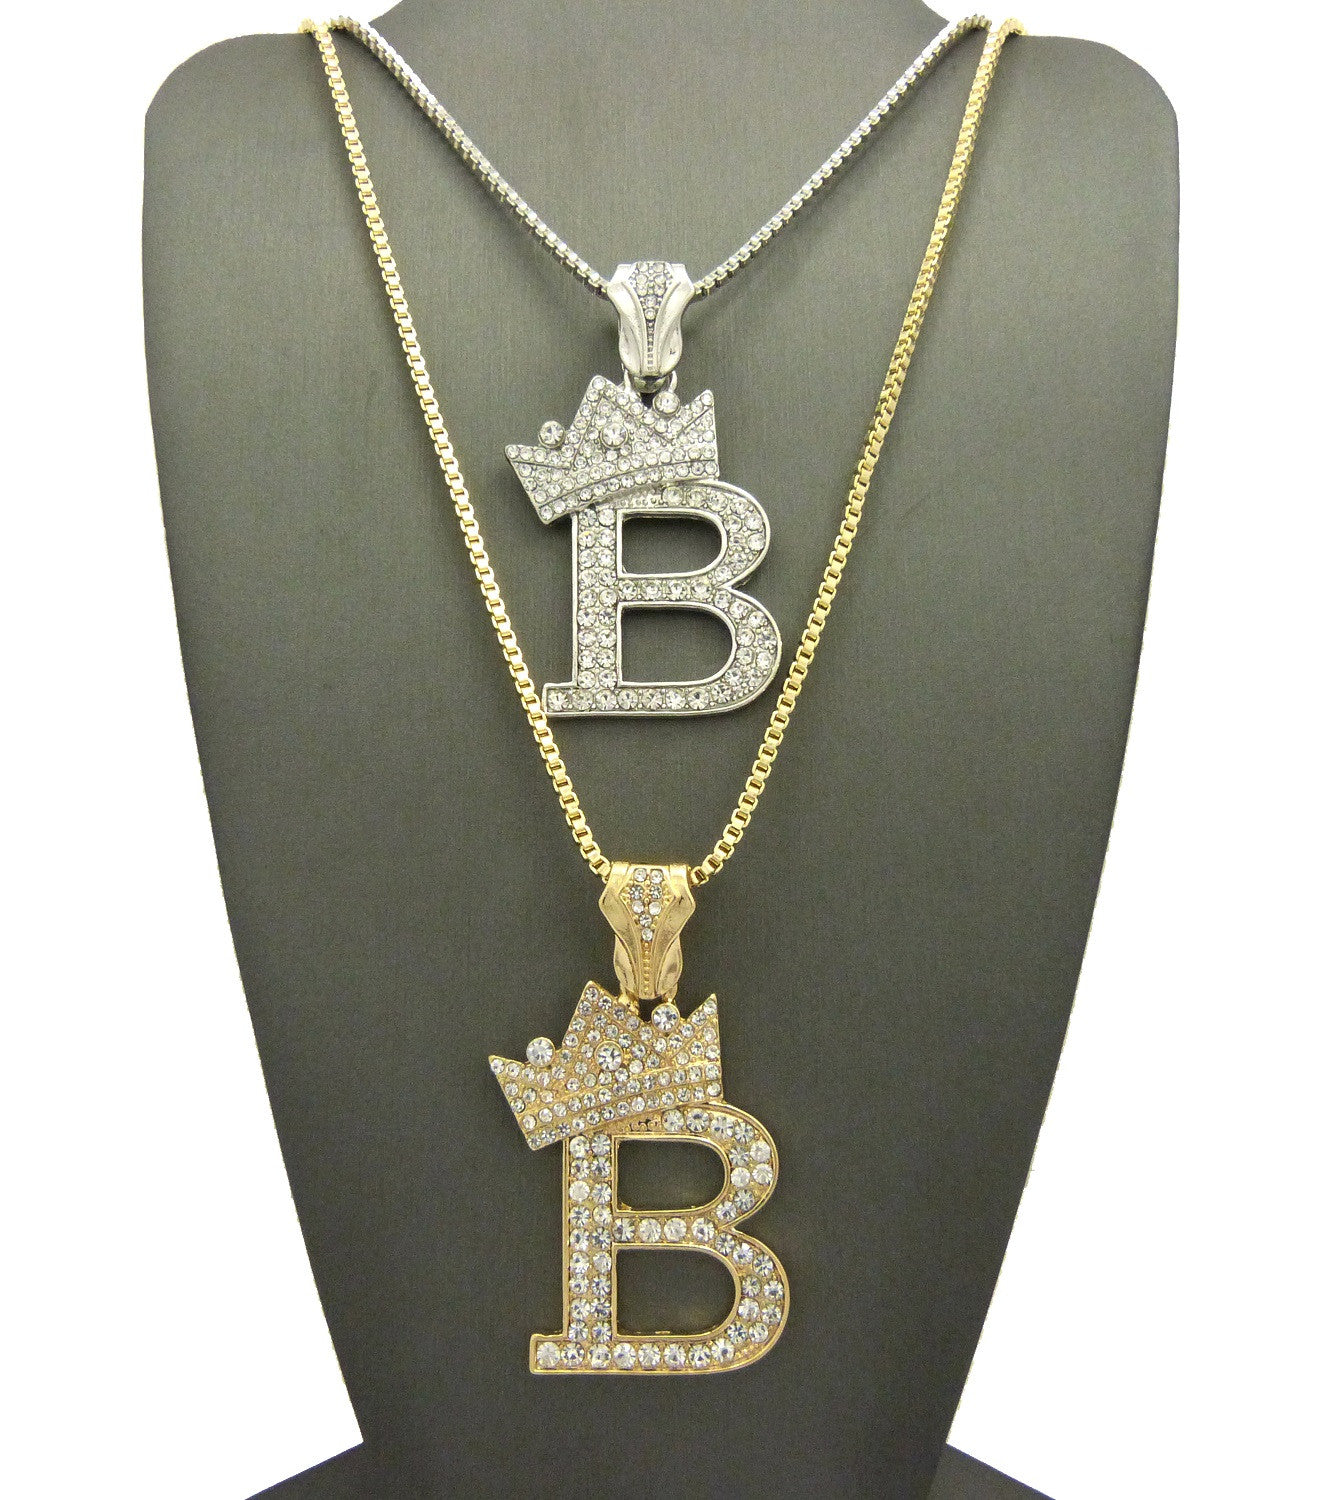 2 Chain Combo Yellow King B Silver King B 24 and 30 Inch Box Chain